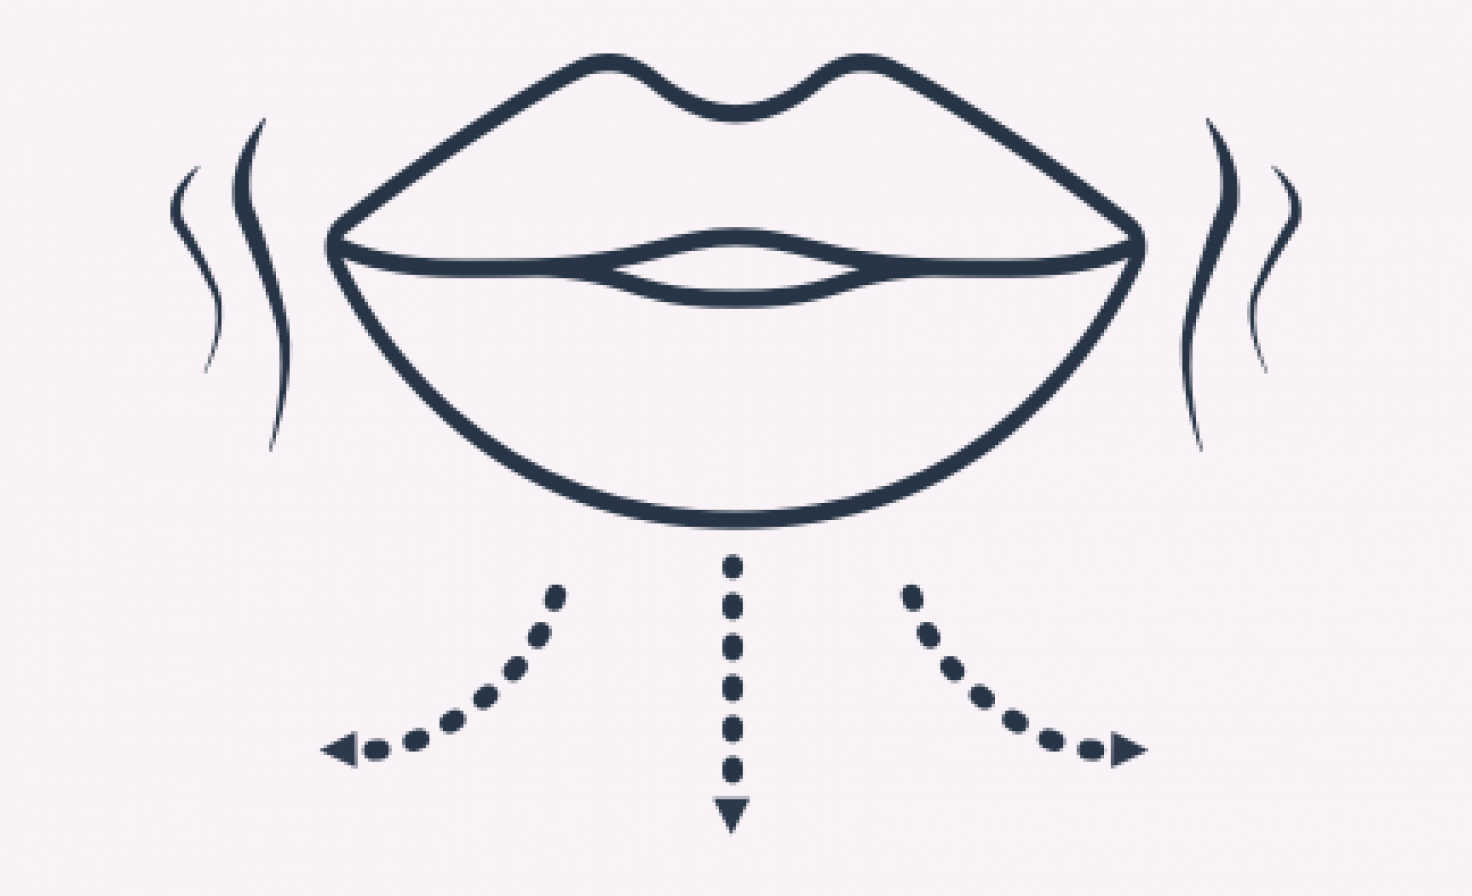 Diagram of a mouth